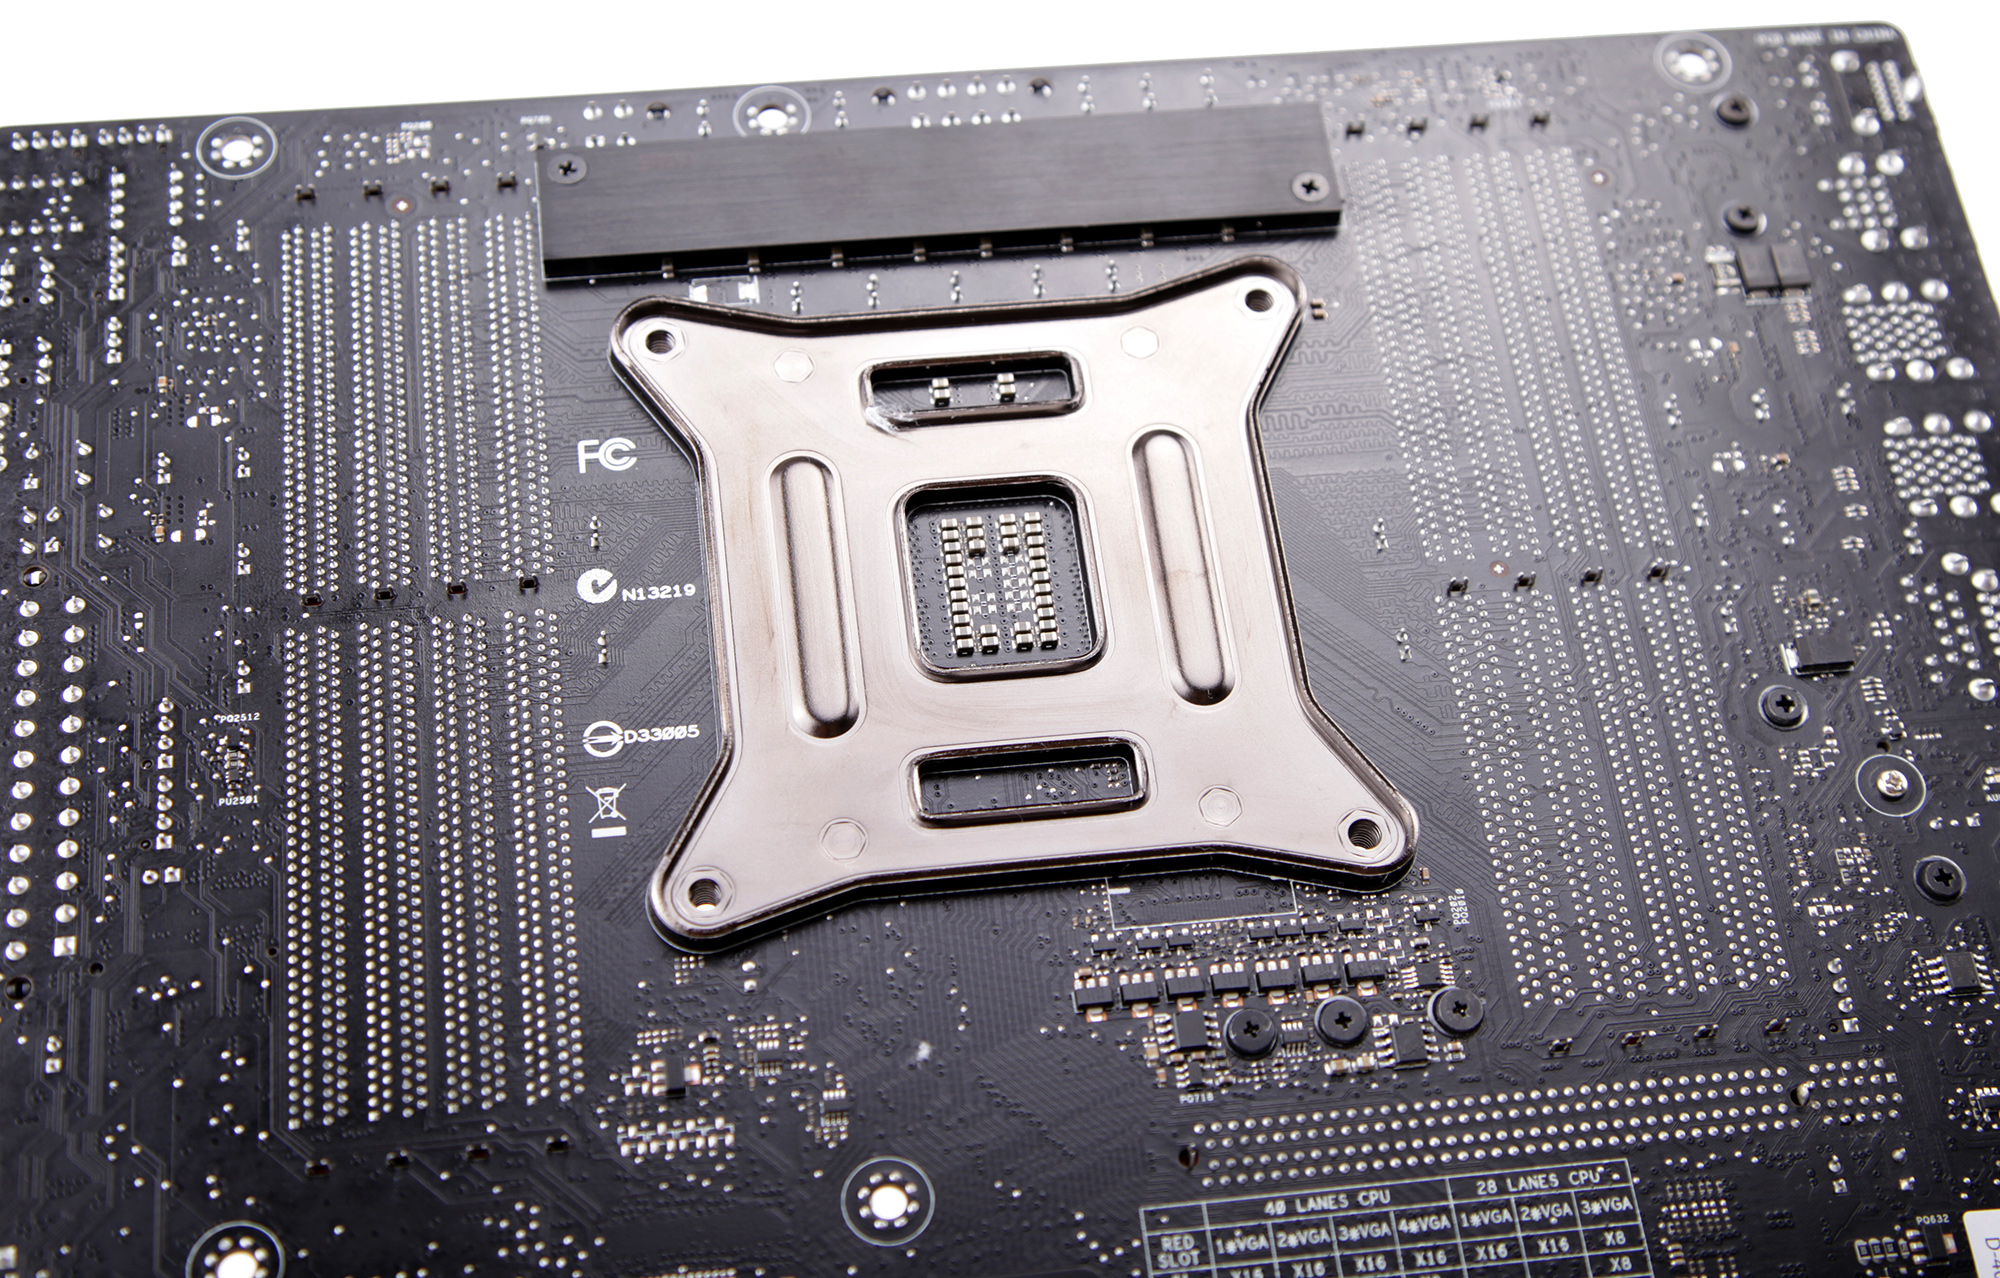 R5E_10 Motherboard backplates